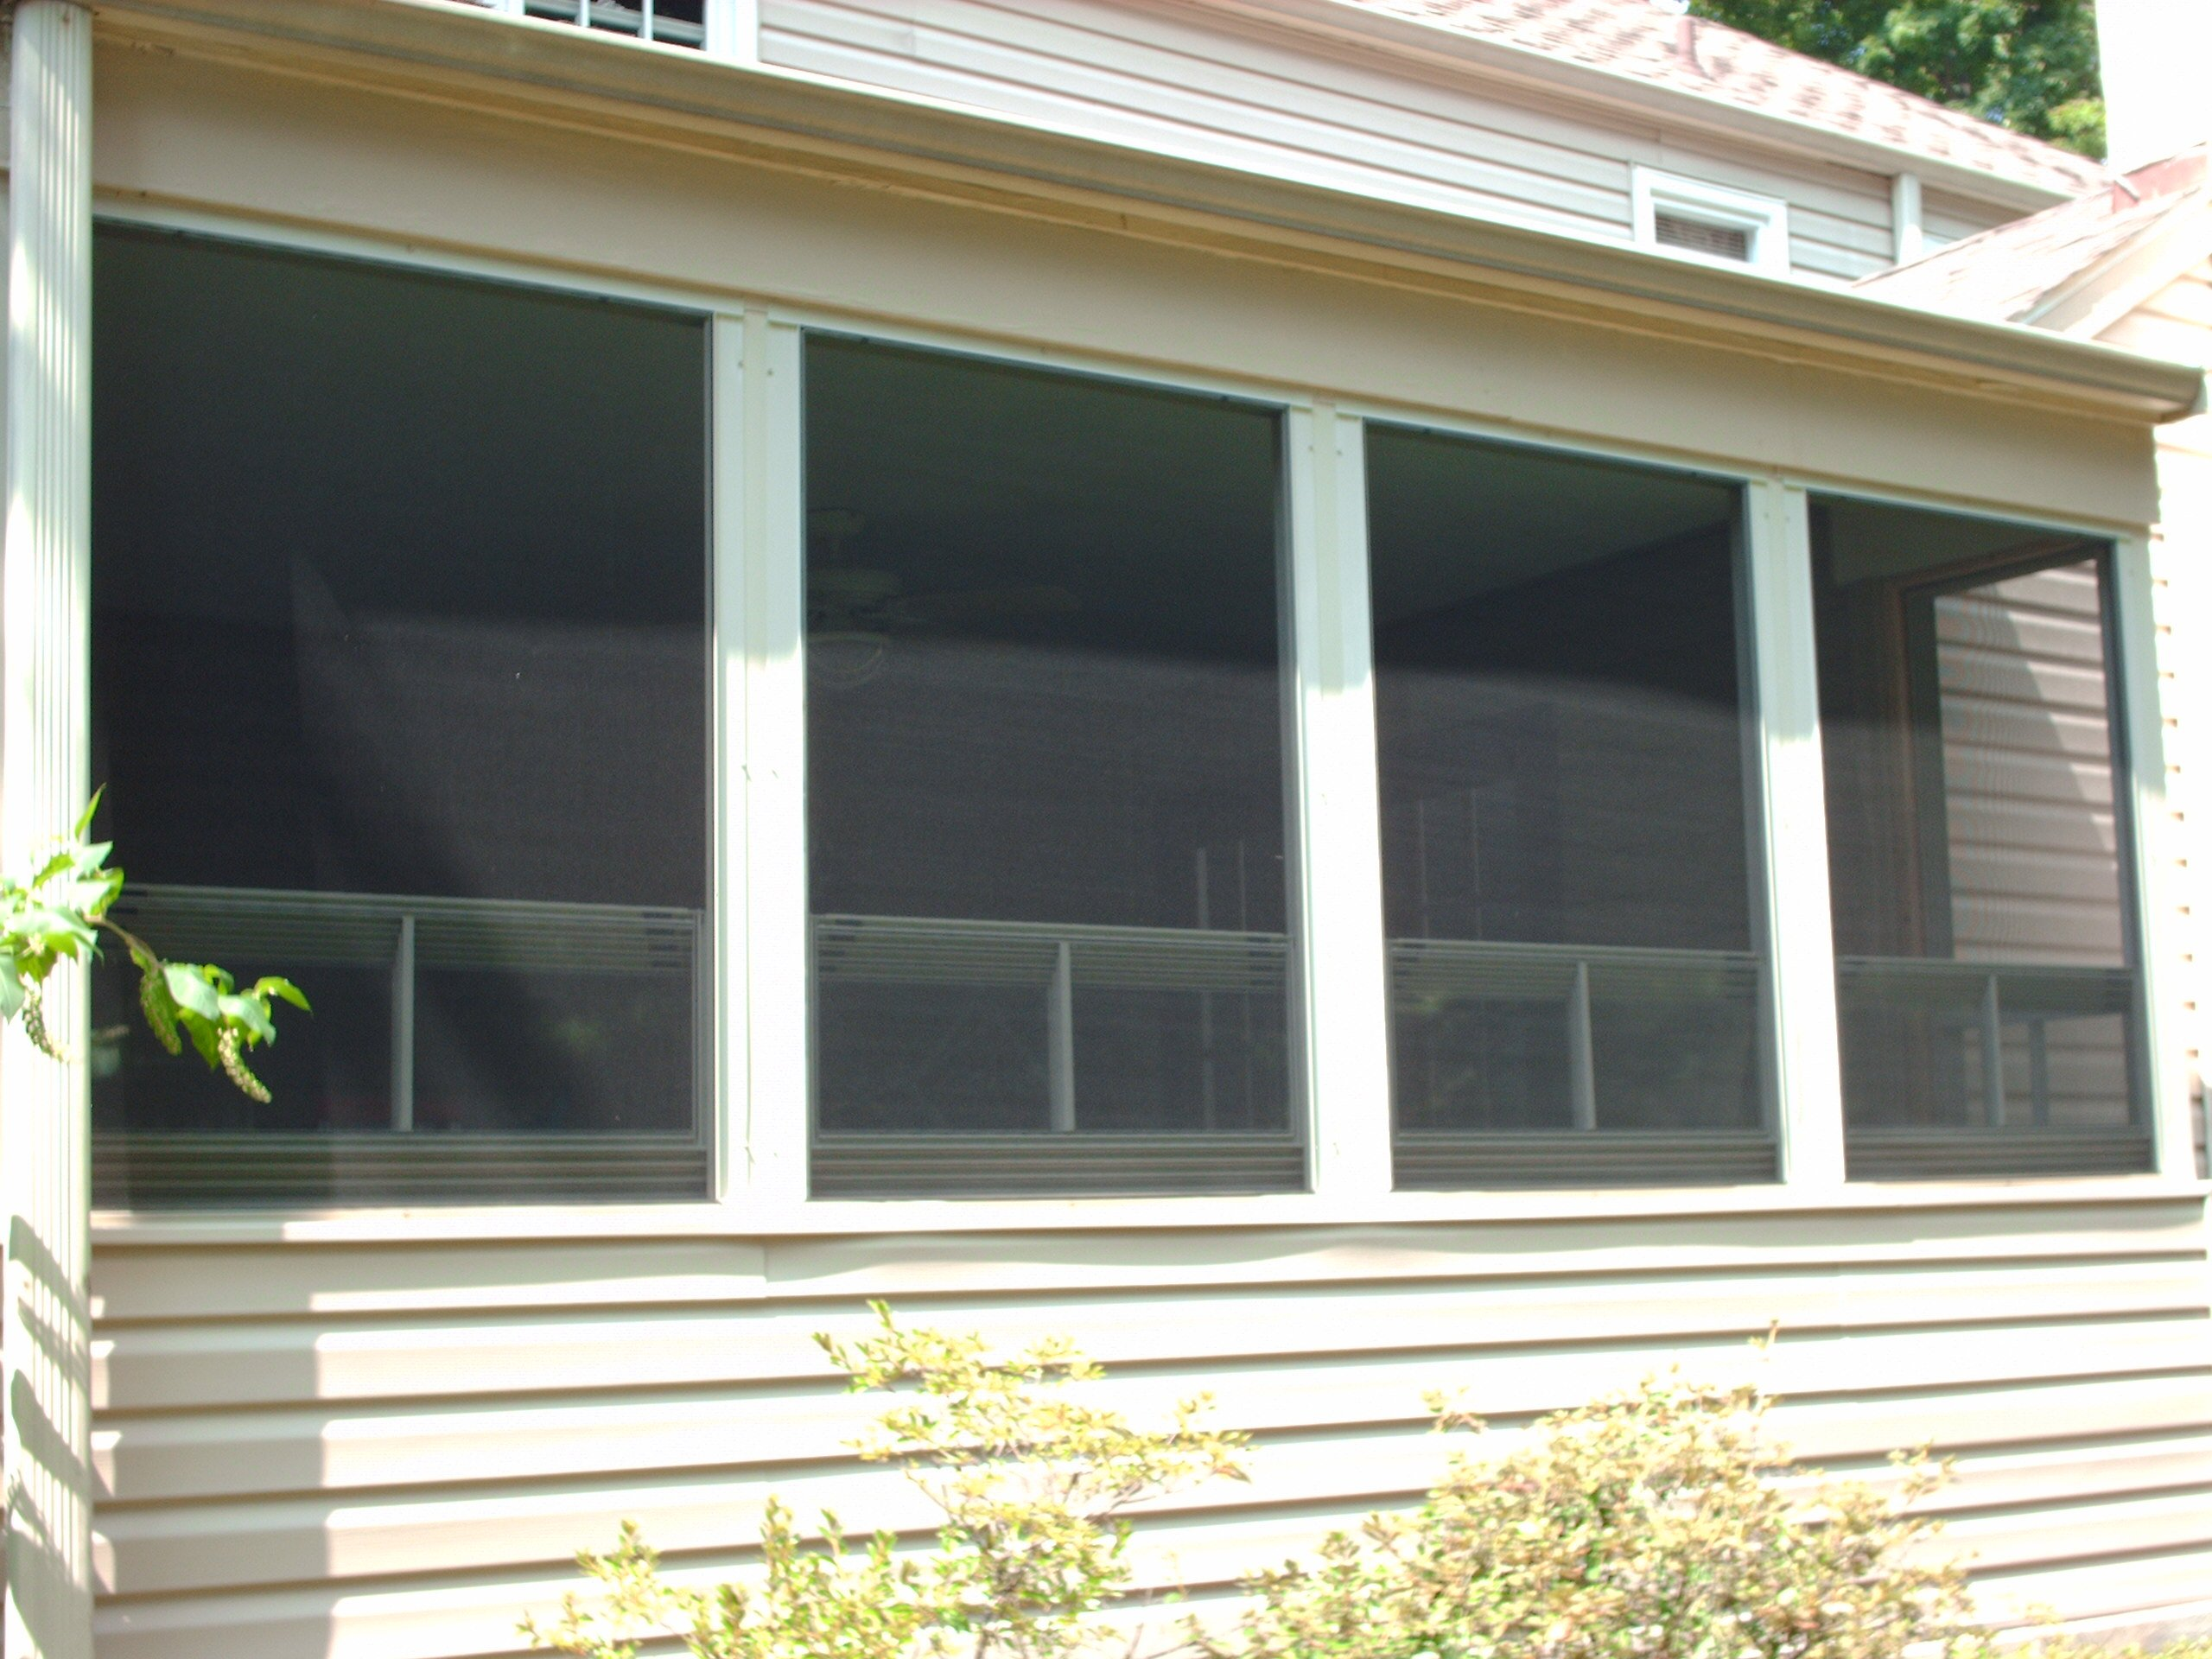 Exterior of side wall with new siding